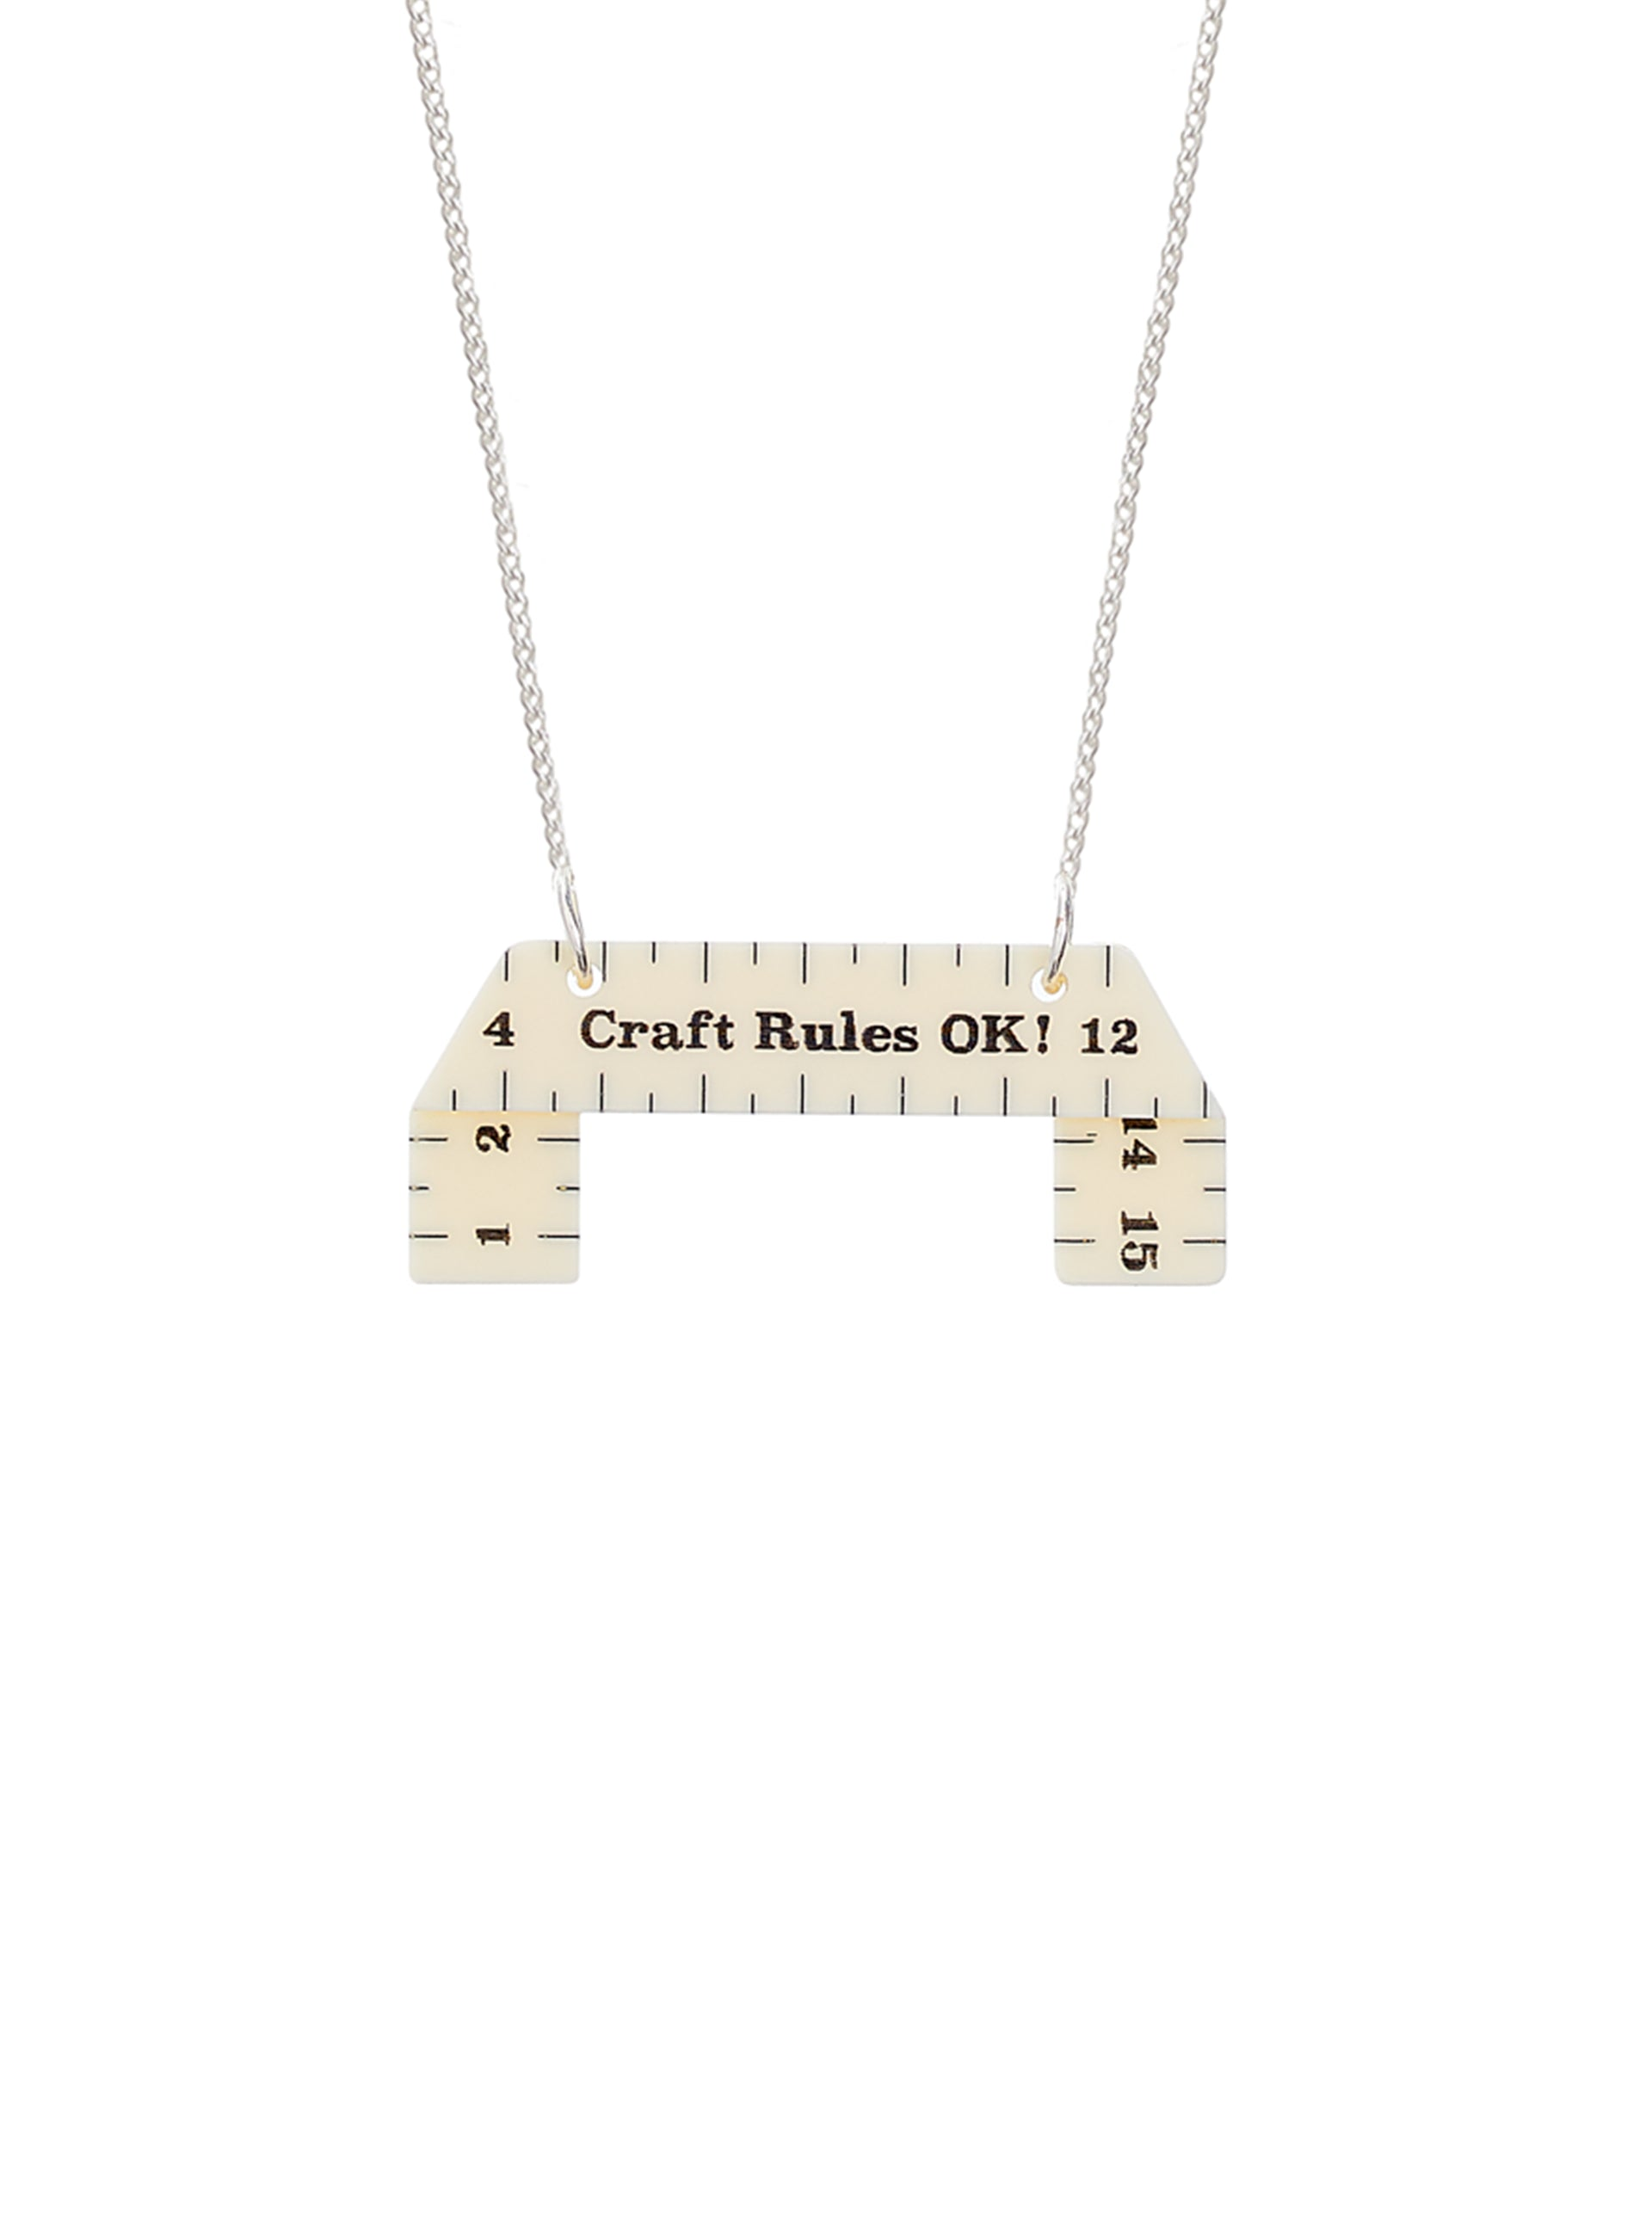 Measuring Tape Necklace